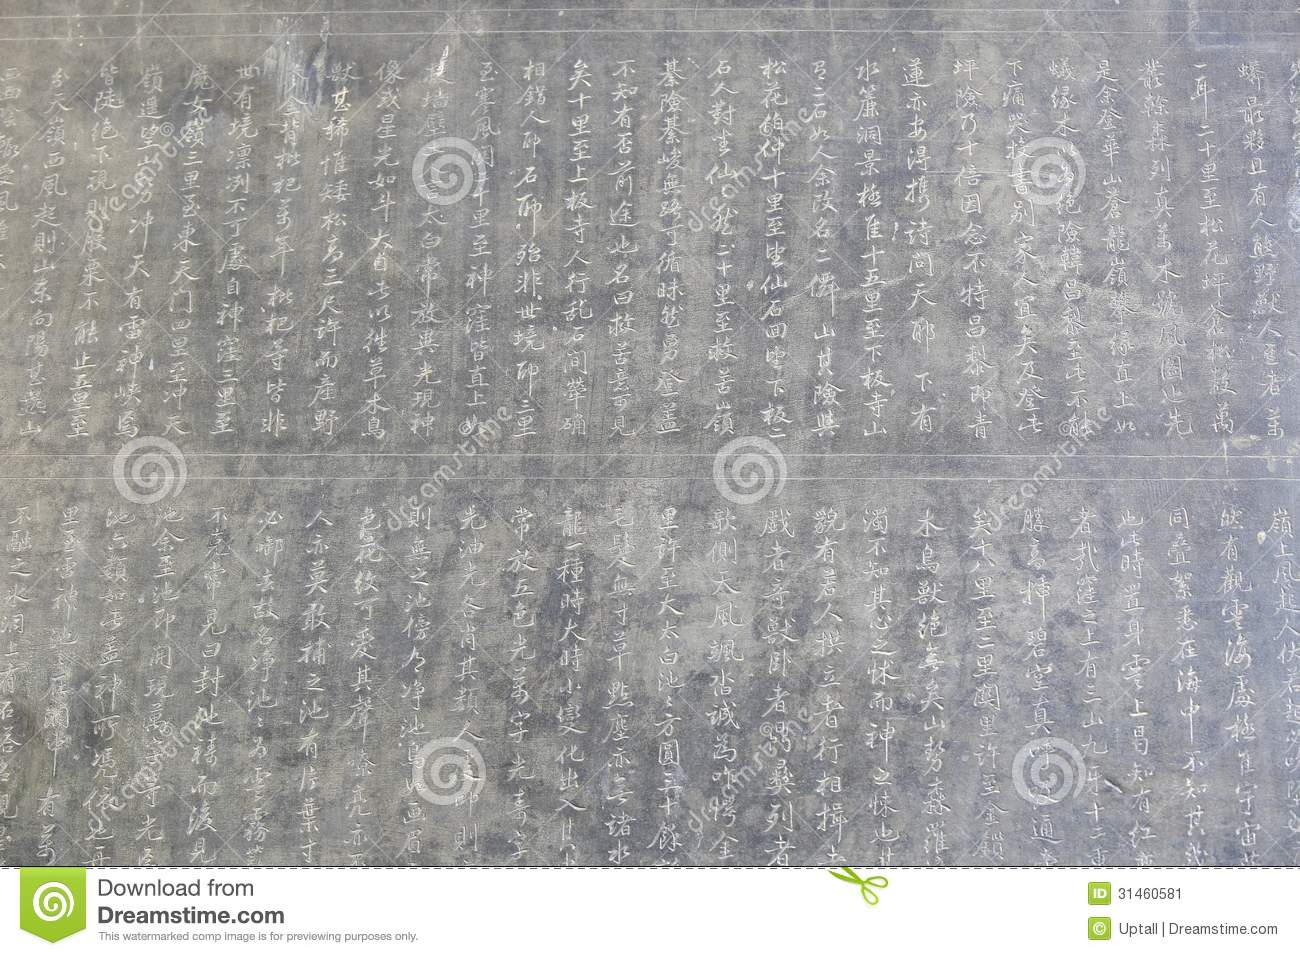 Ancient Chinese Calligraphy Art Stock Image Image 31460581: ancient china calligraphy